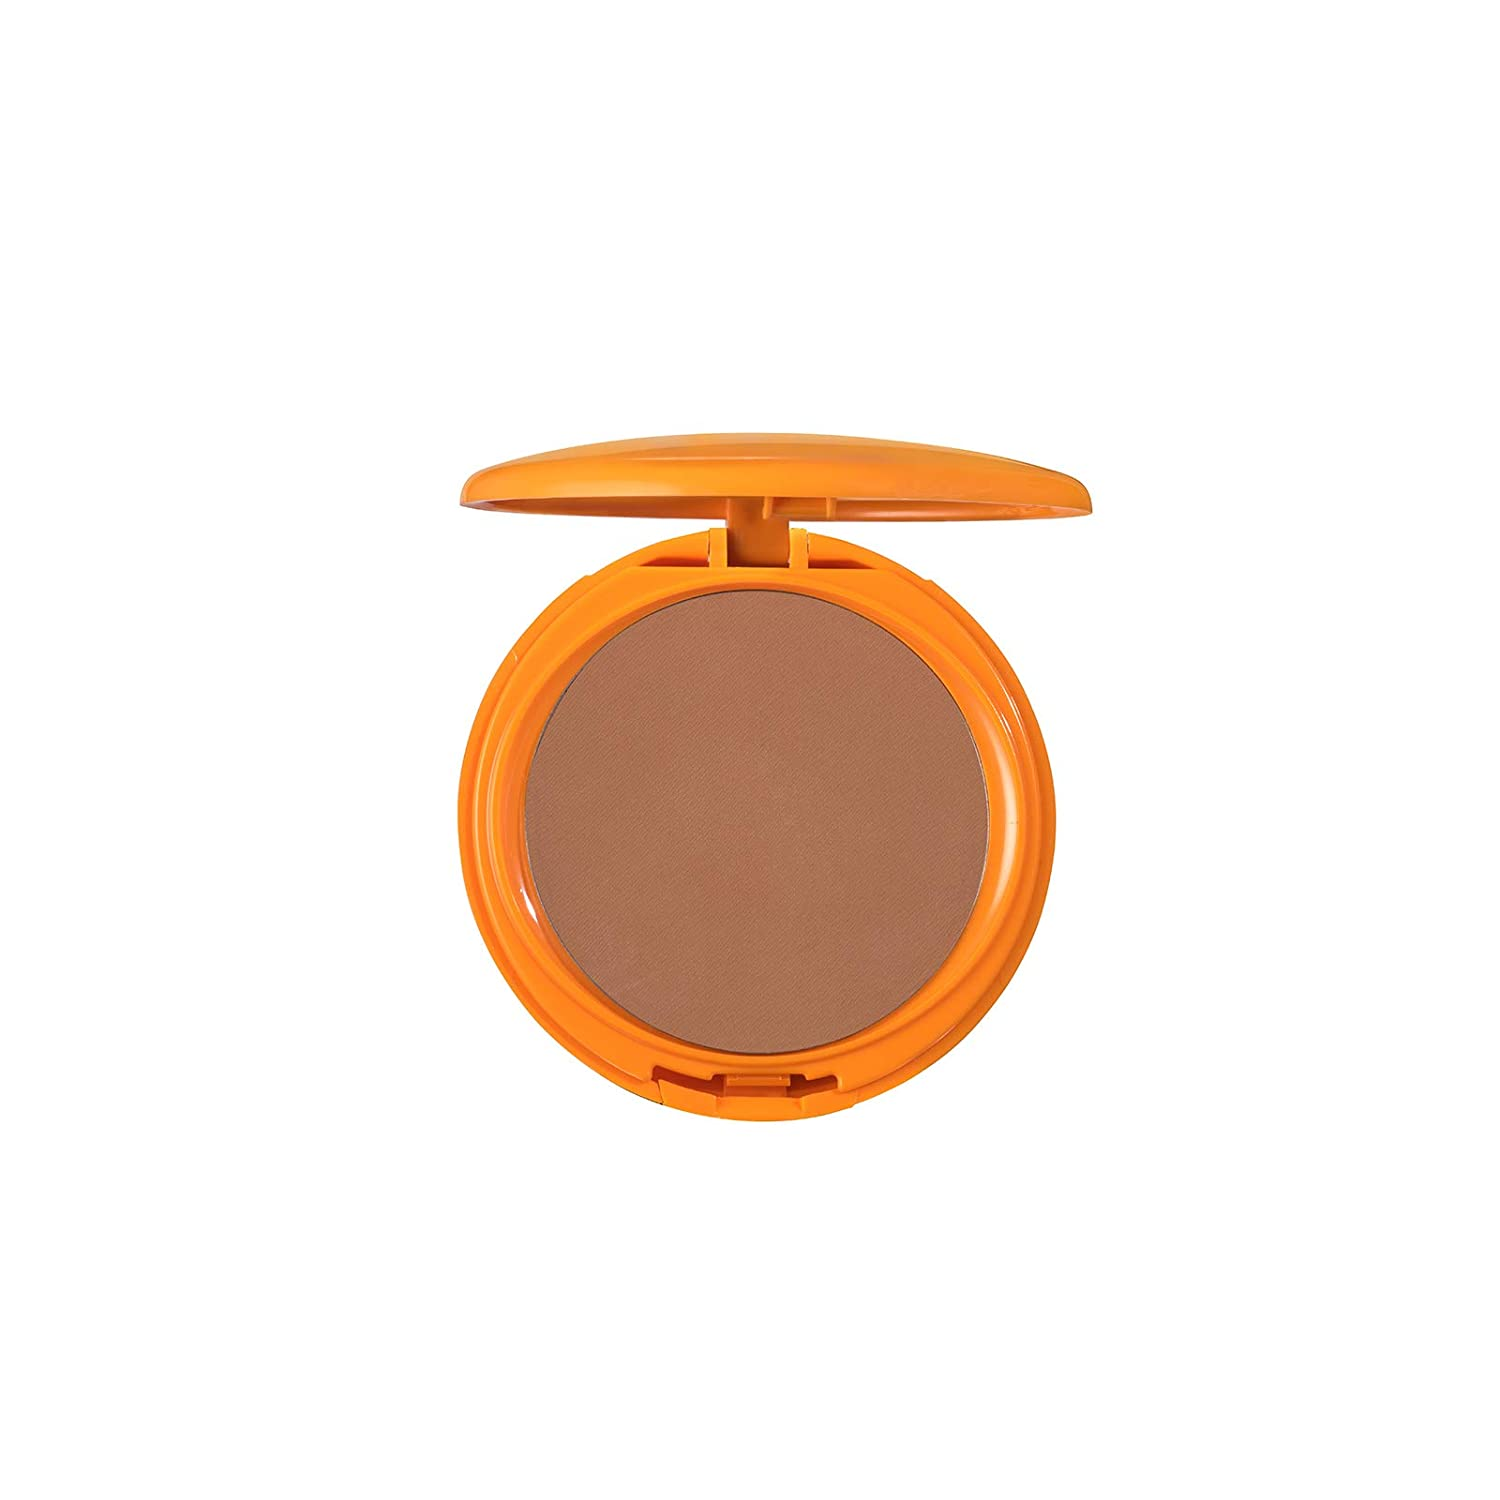 Radiant Professional Face Powder Photo Ageing Protection SPF 30 - Advanced Compact Powder For UVA & UVB Protection - Sweat-Proof Matte Press Powder For Oil Control & Anti-aging Action -12gr (SAND)